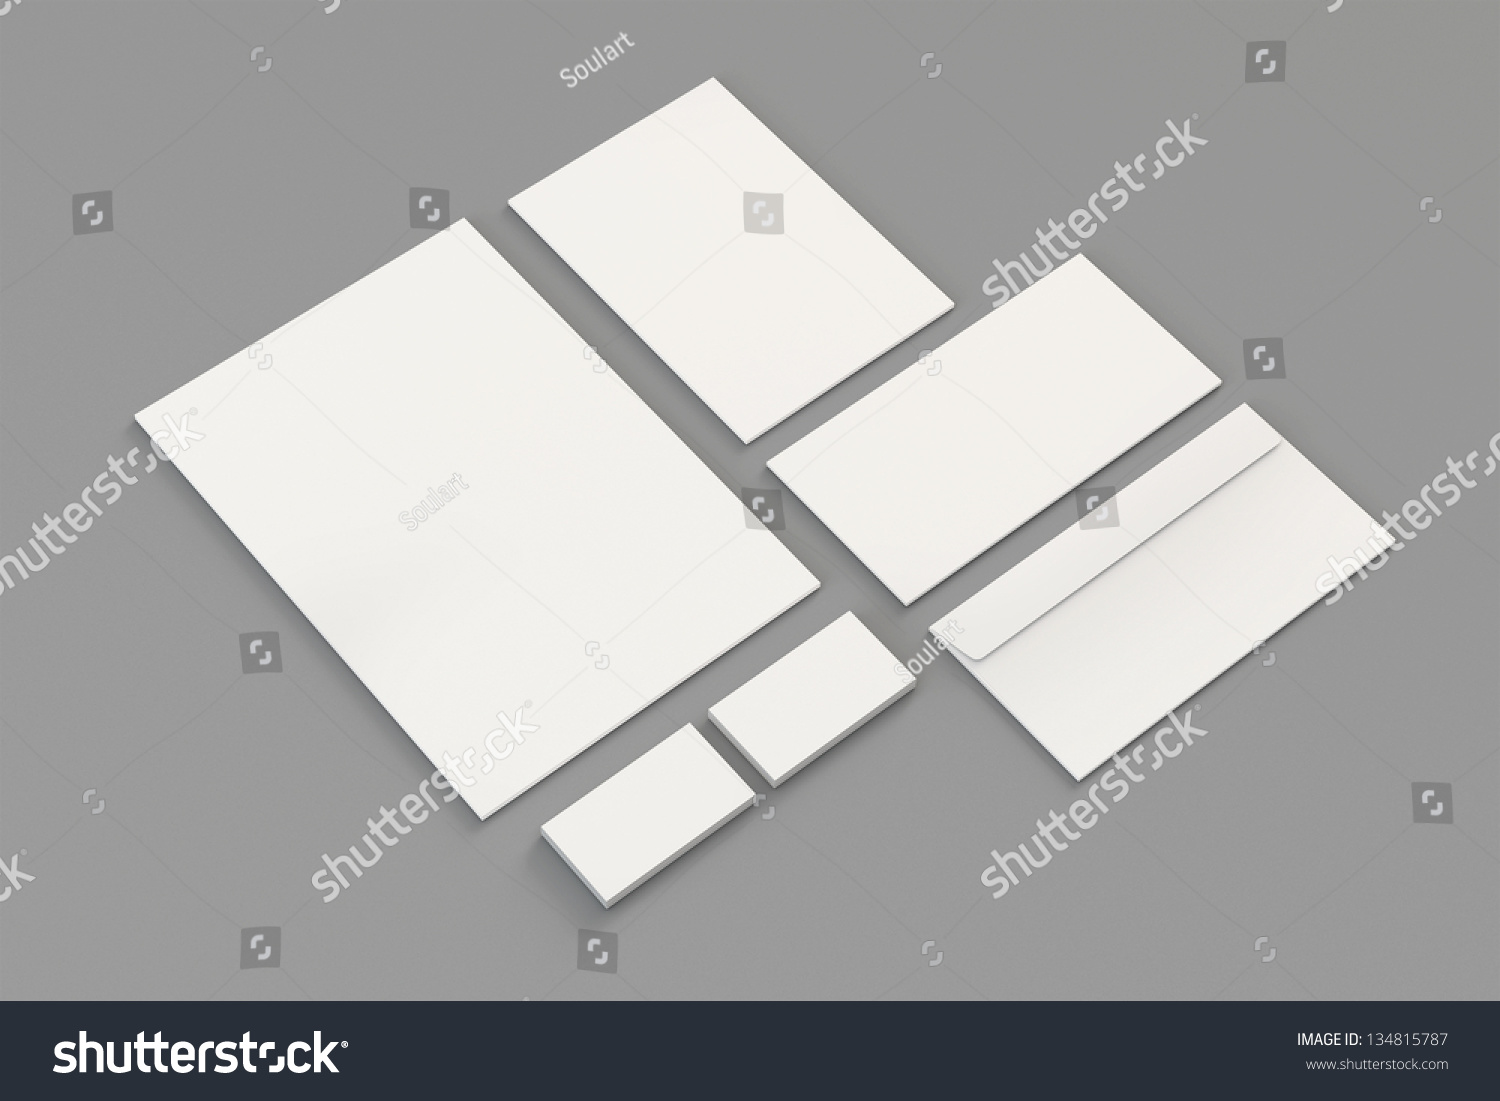 Blank A4 Paper Business Cards Letterhead Stock Illustration ...